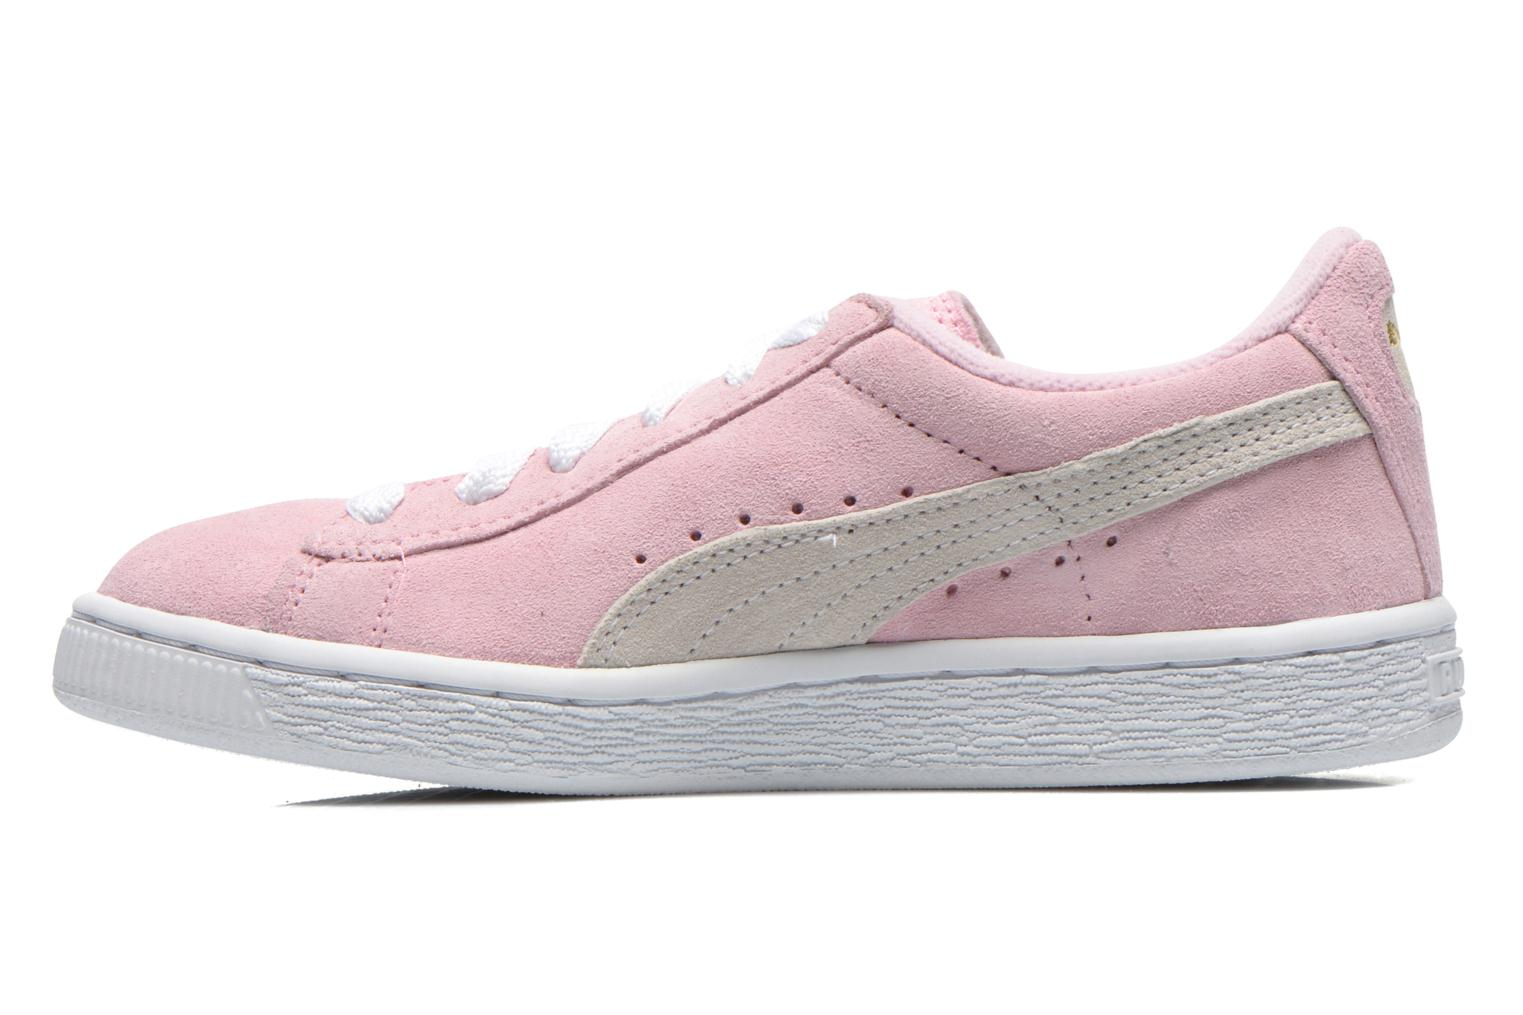 Baskets Puma Suede Jr. Rose vue face